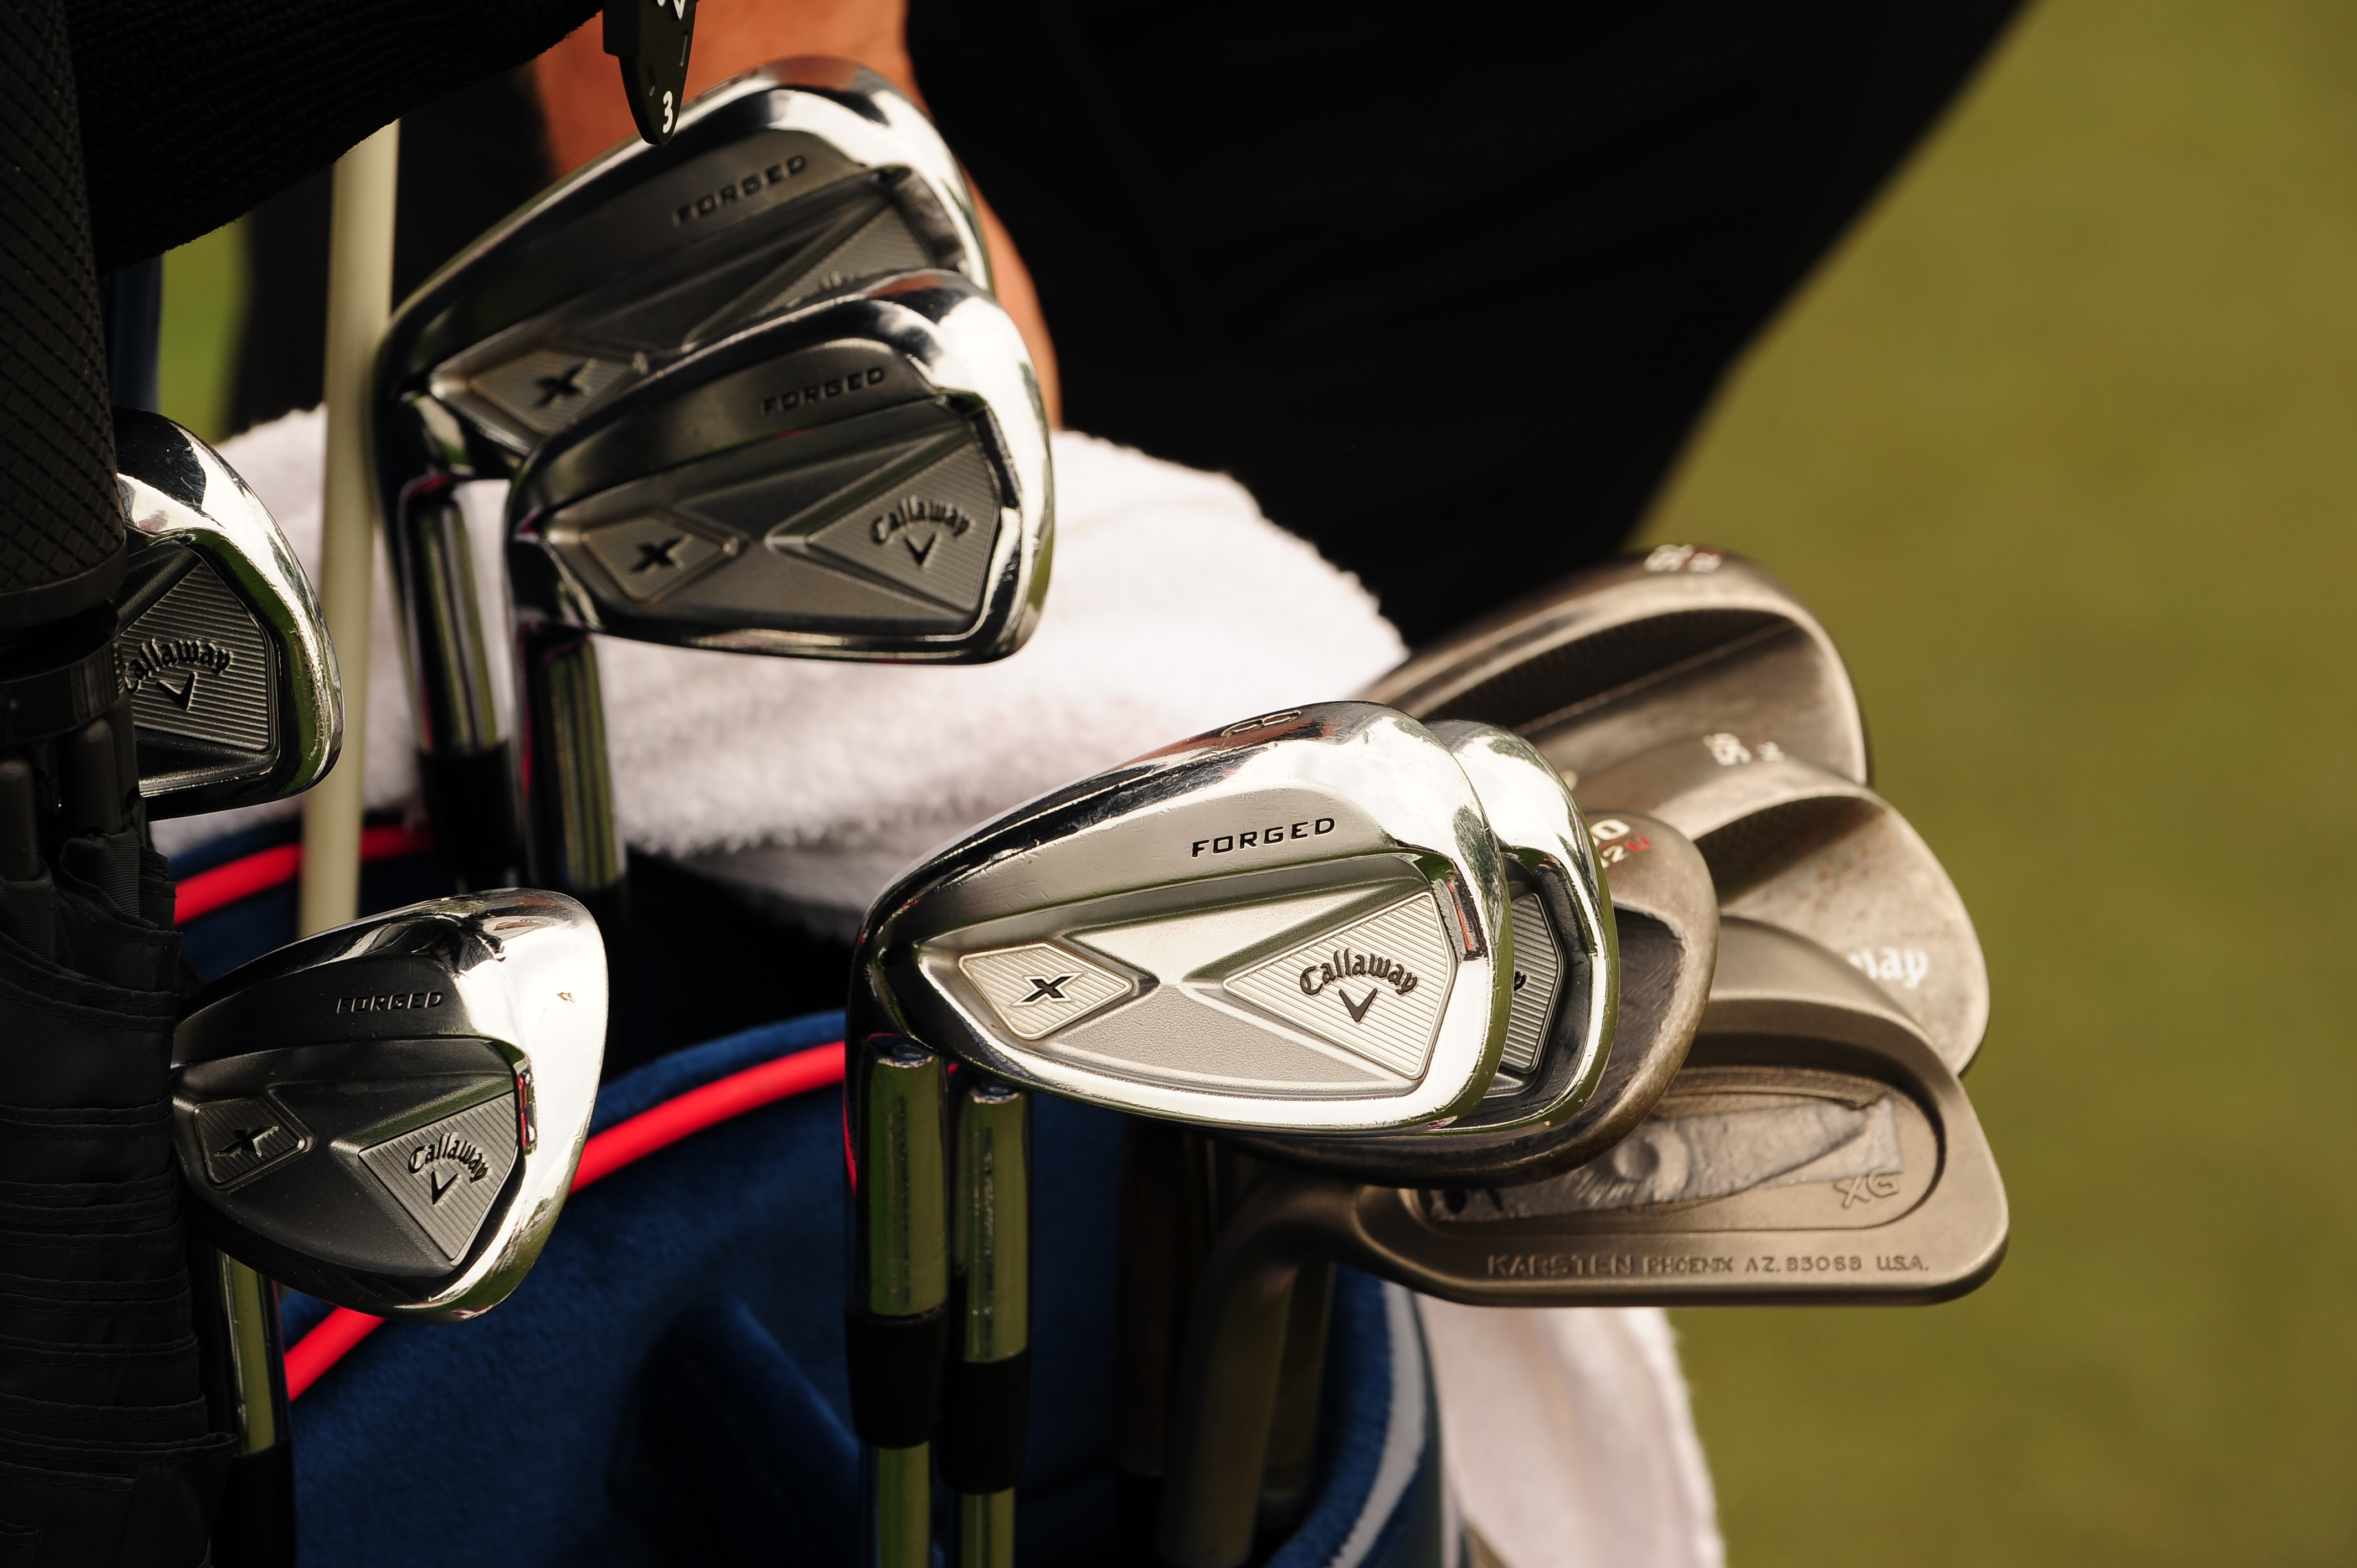 Callaway player Phil Mickelson is playing X Forged irons, Mack Daddy2 wedges and surprisingly a PING Eye2 XG wedge.